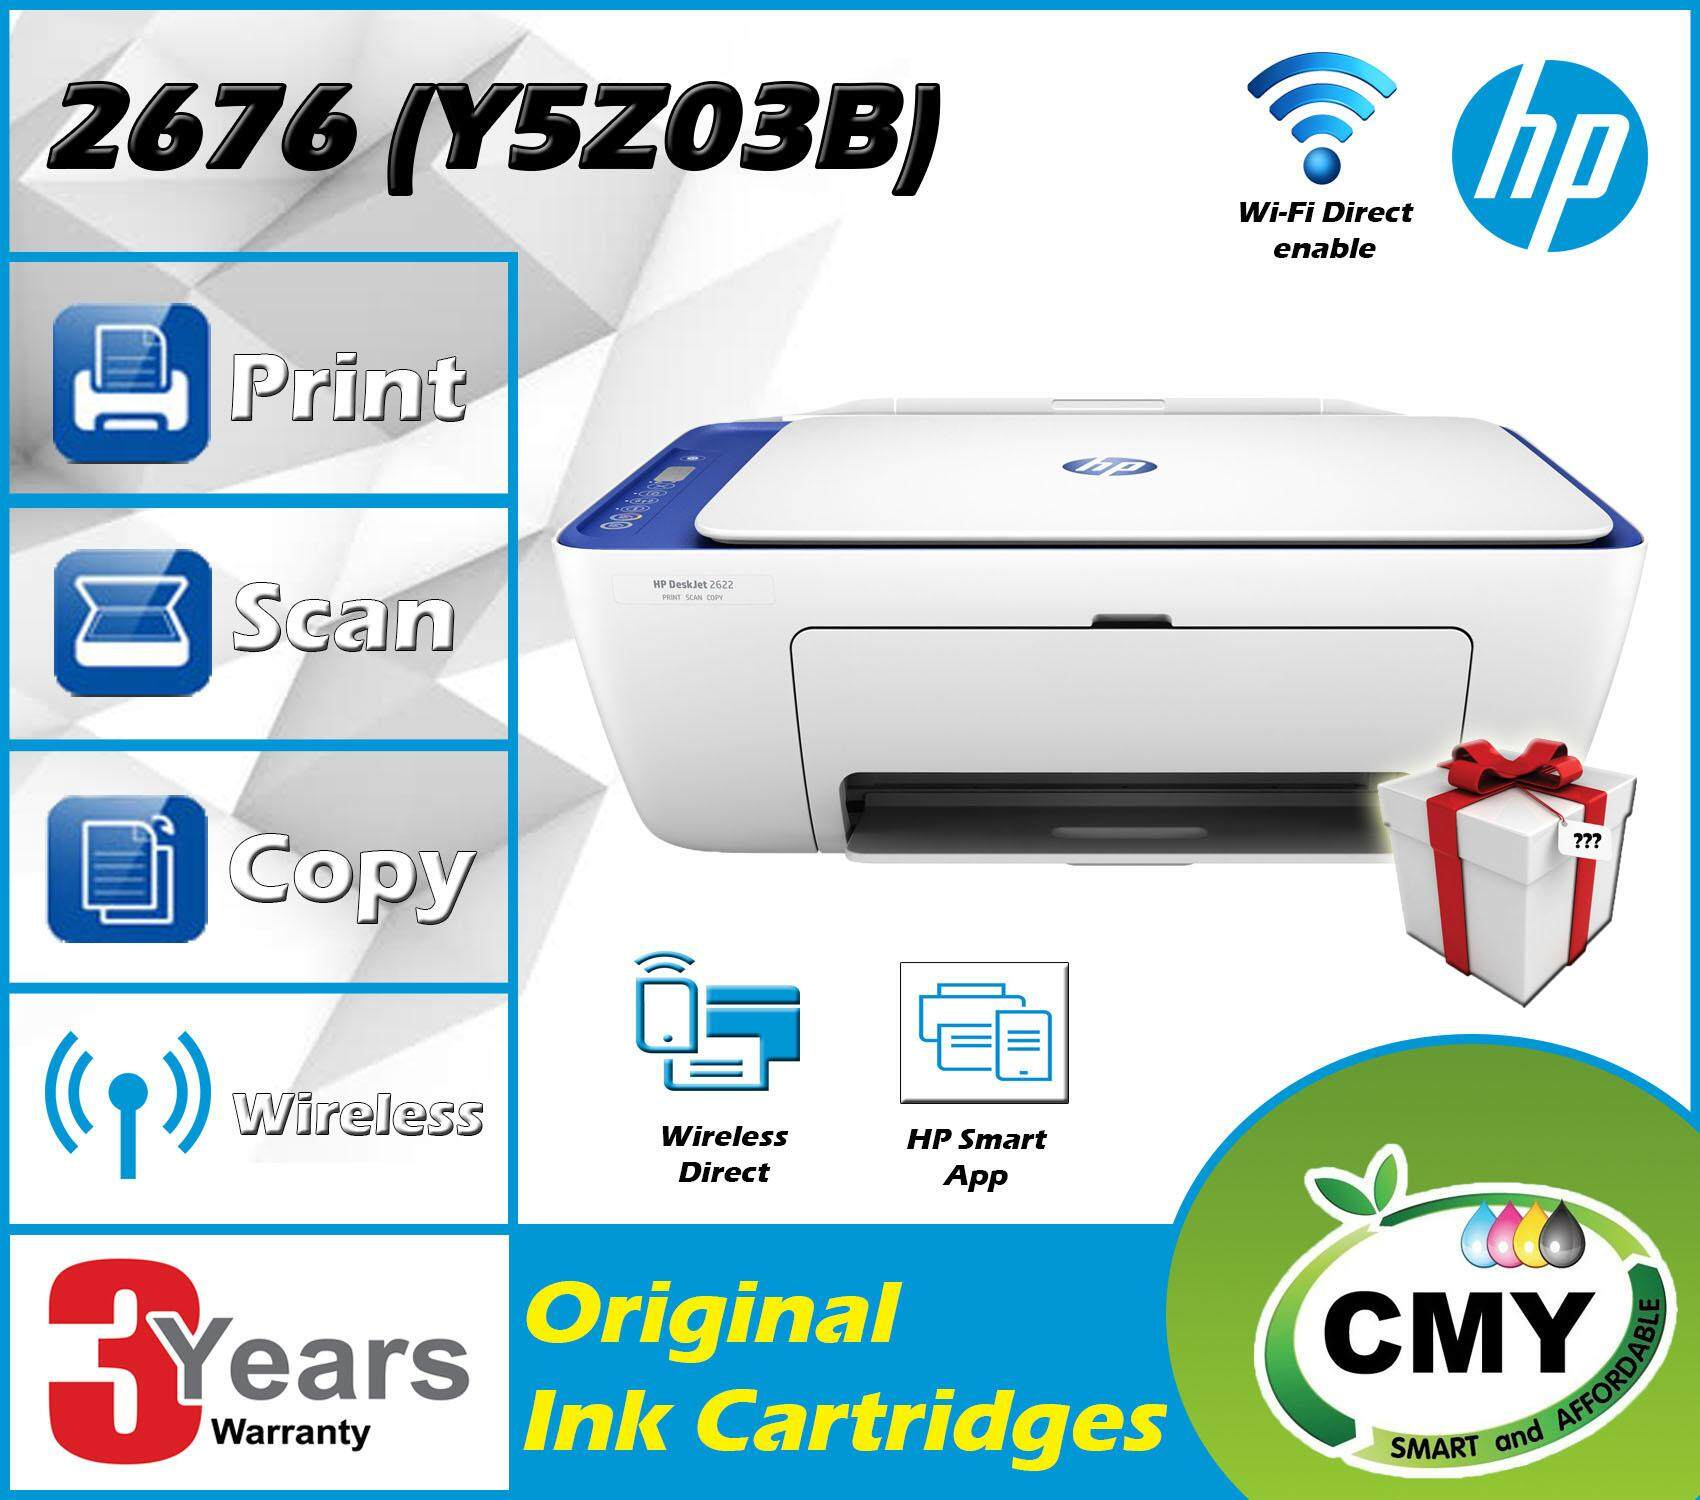 HP Ink Jet for the Best Prices in Malaysia